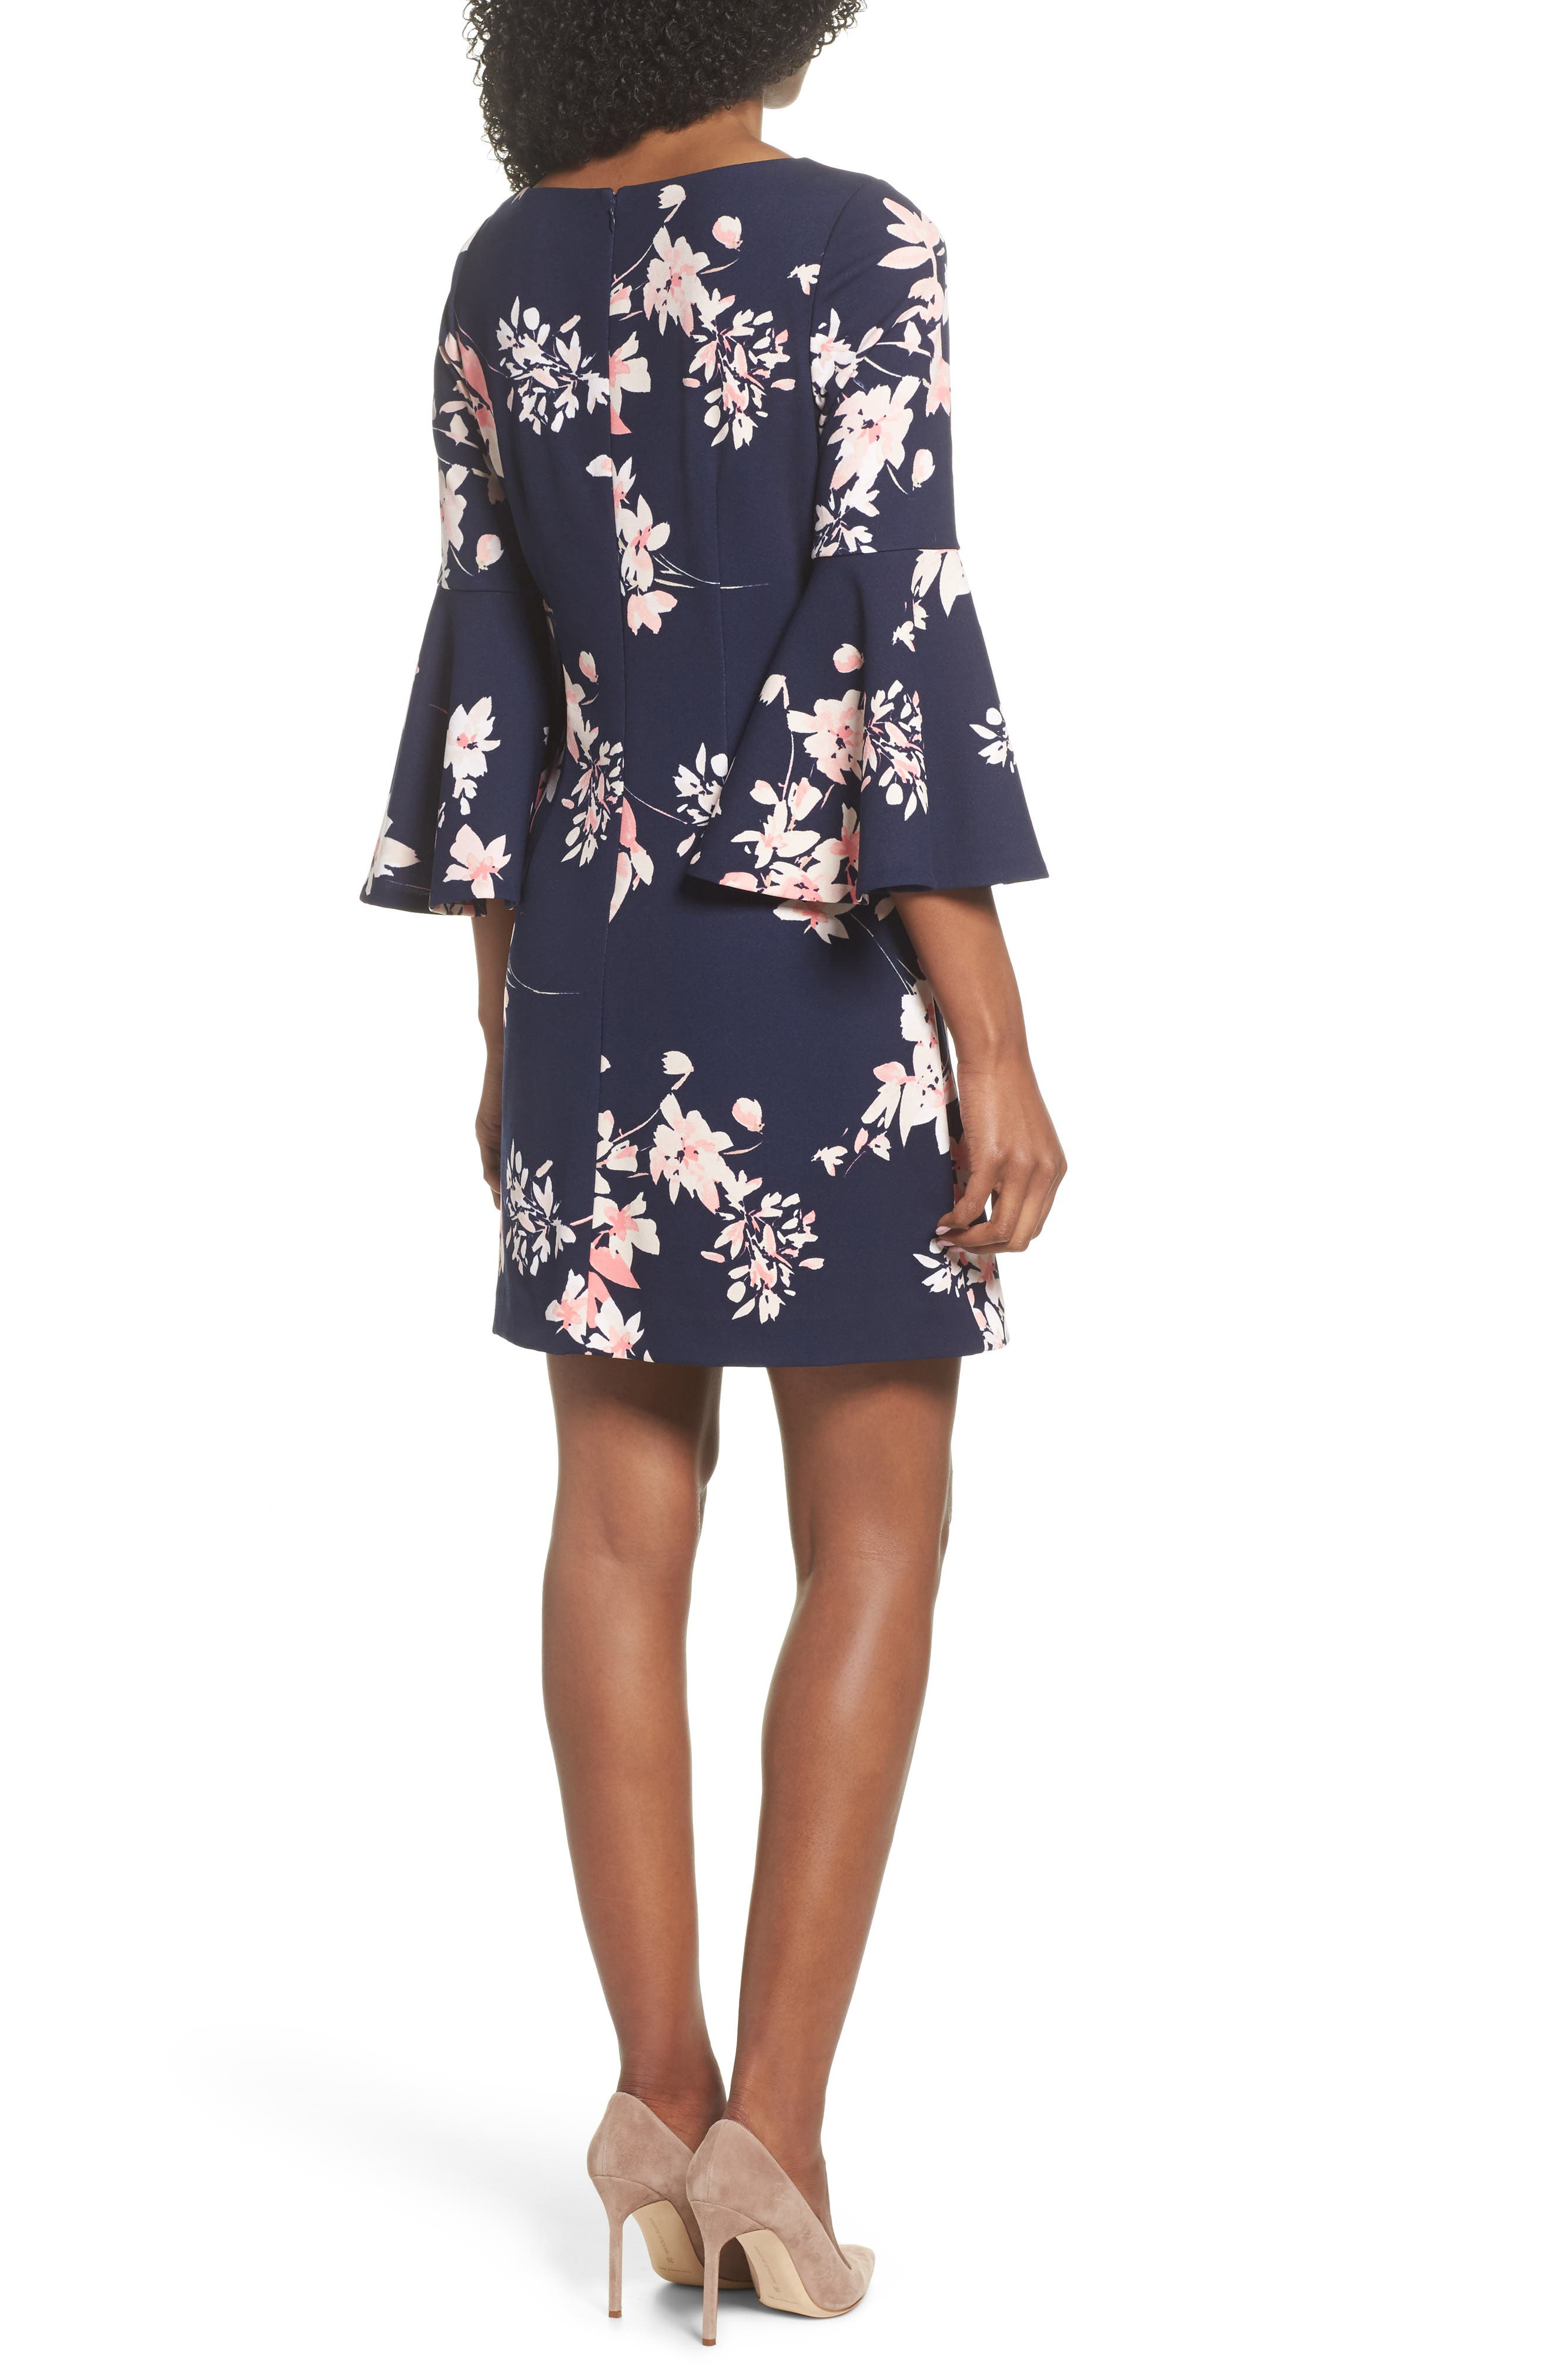 ELIZA J,                             Floral Bell Sleeve Dress,                             Alternate thumbnail 2, color,                             NAVY/PINK